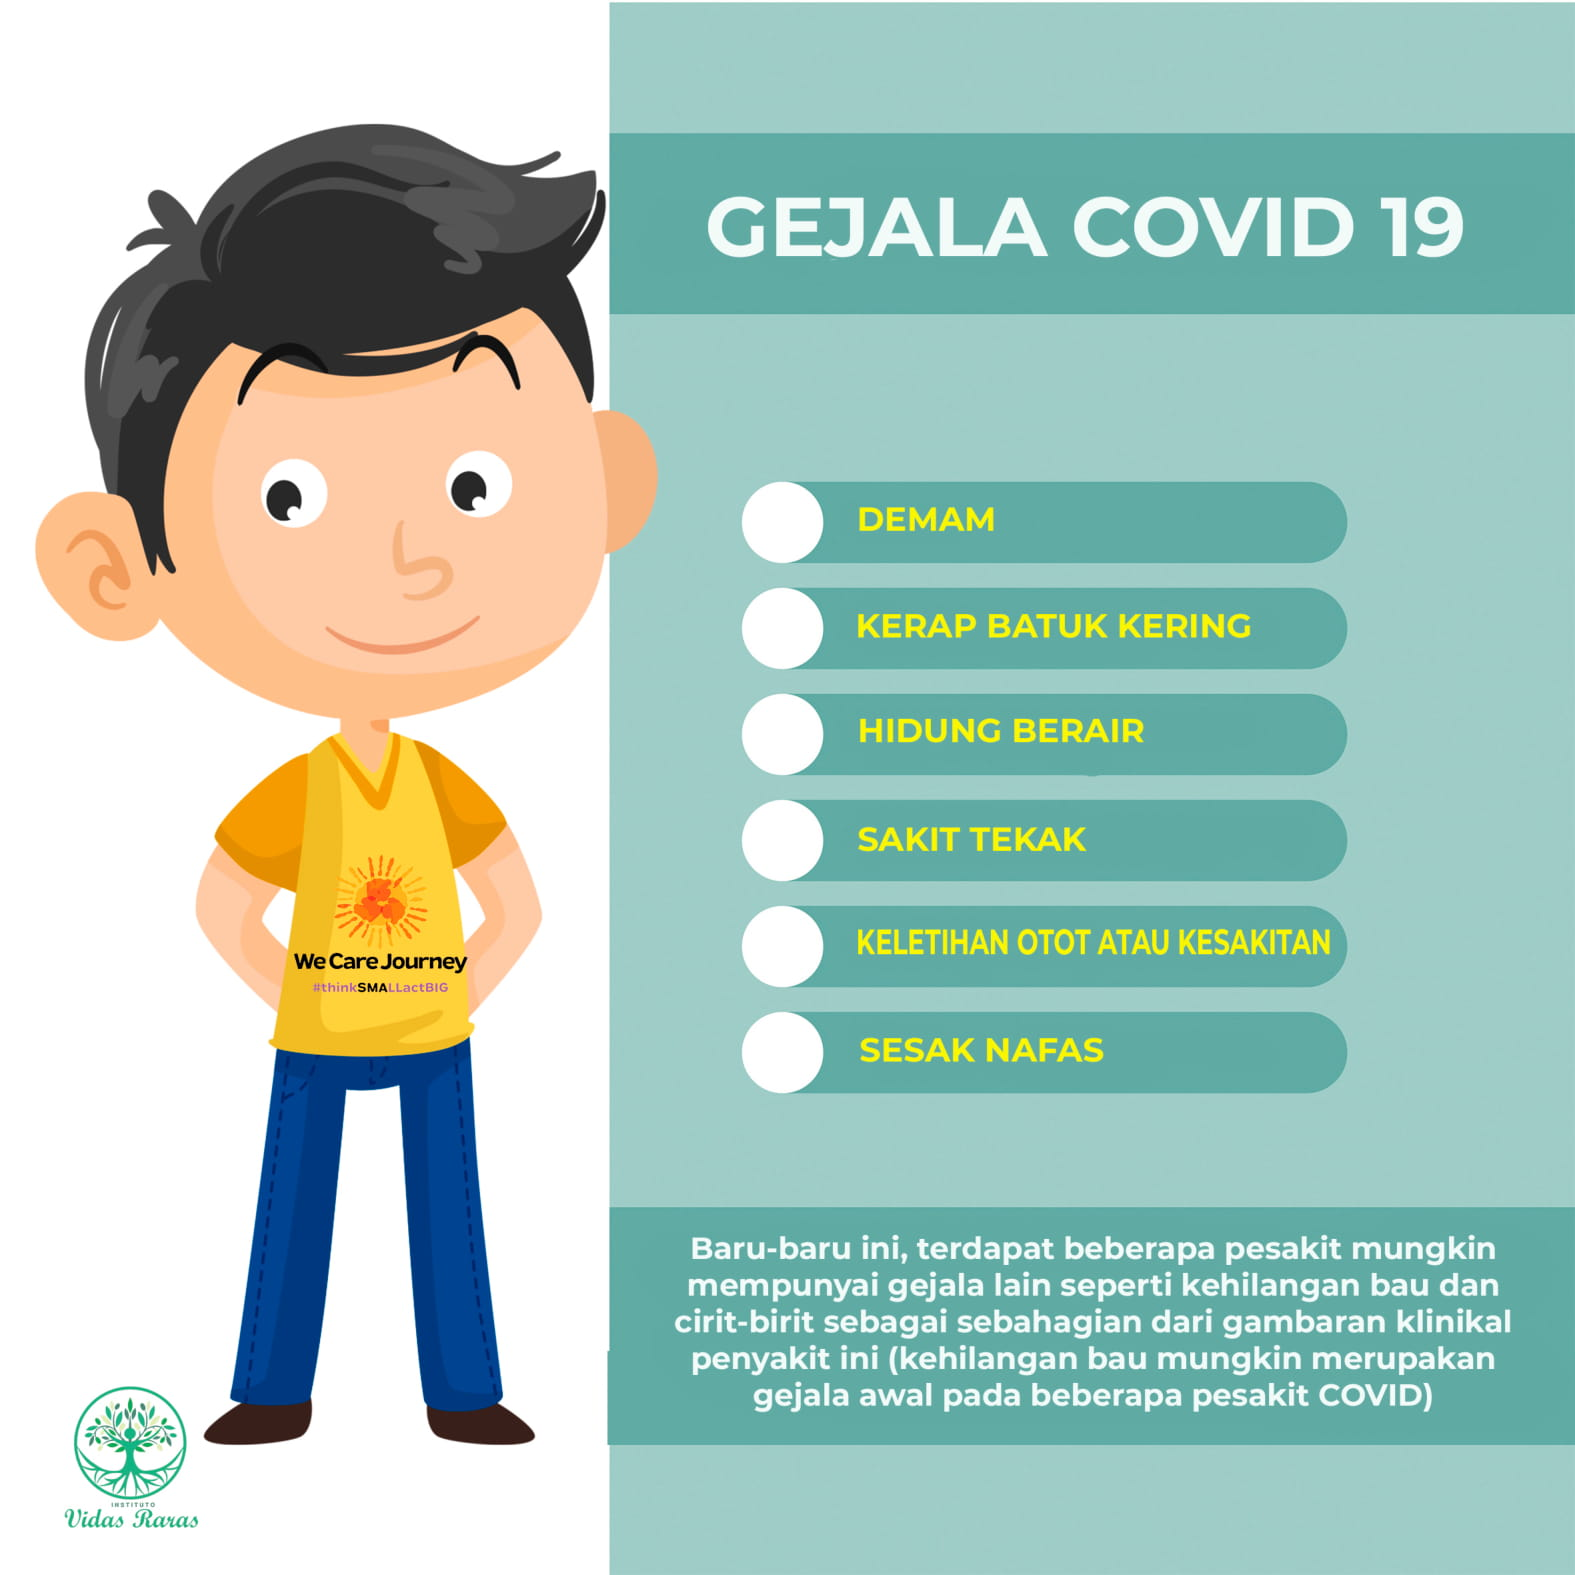 General Guidelines For People With Spinal Muscular Atrophy Or Sma And Their Caregivers In The Coronavirus Pandemic Stories We Care Journey